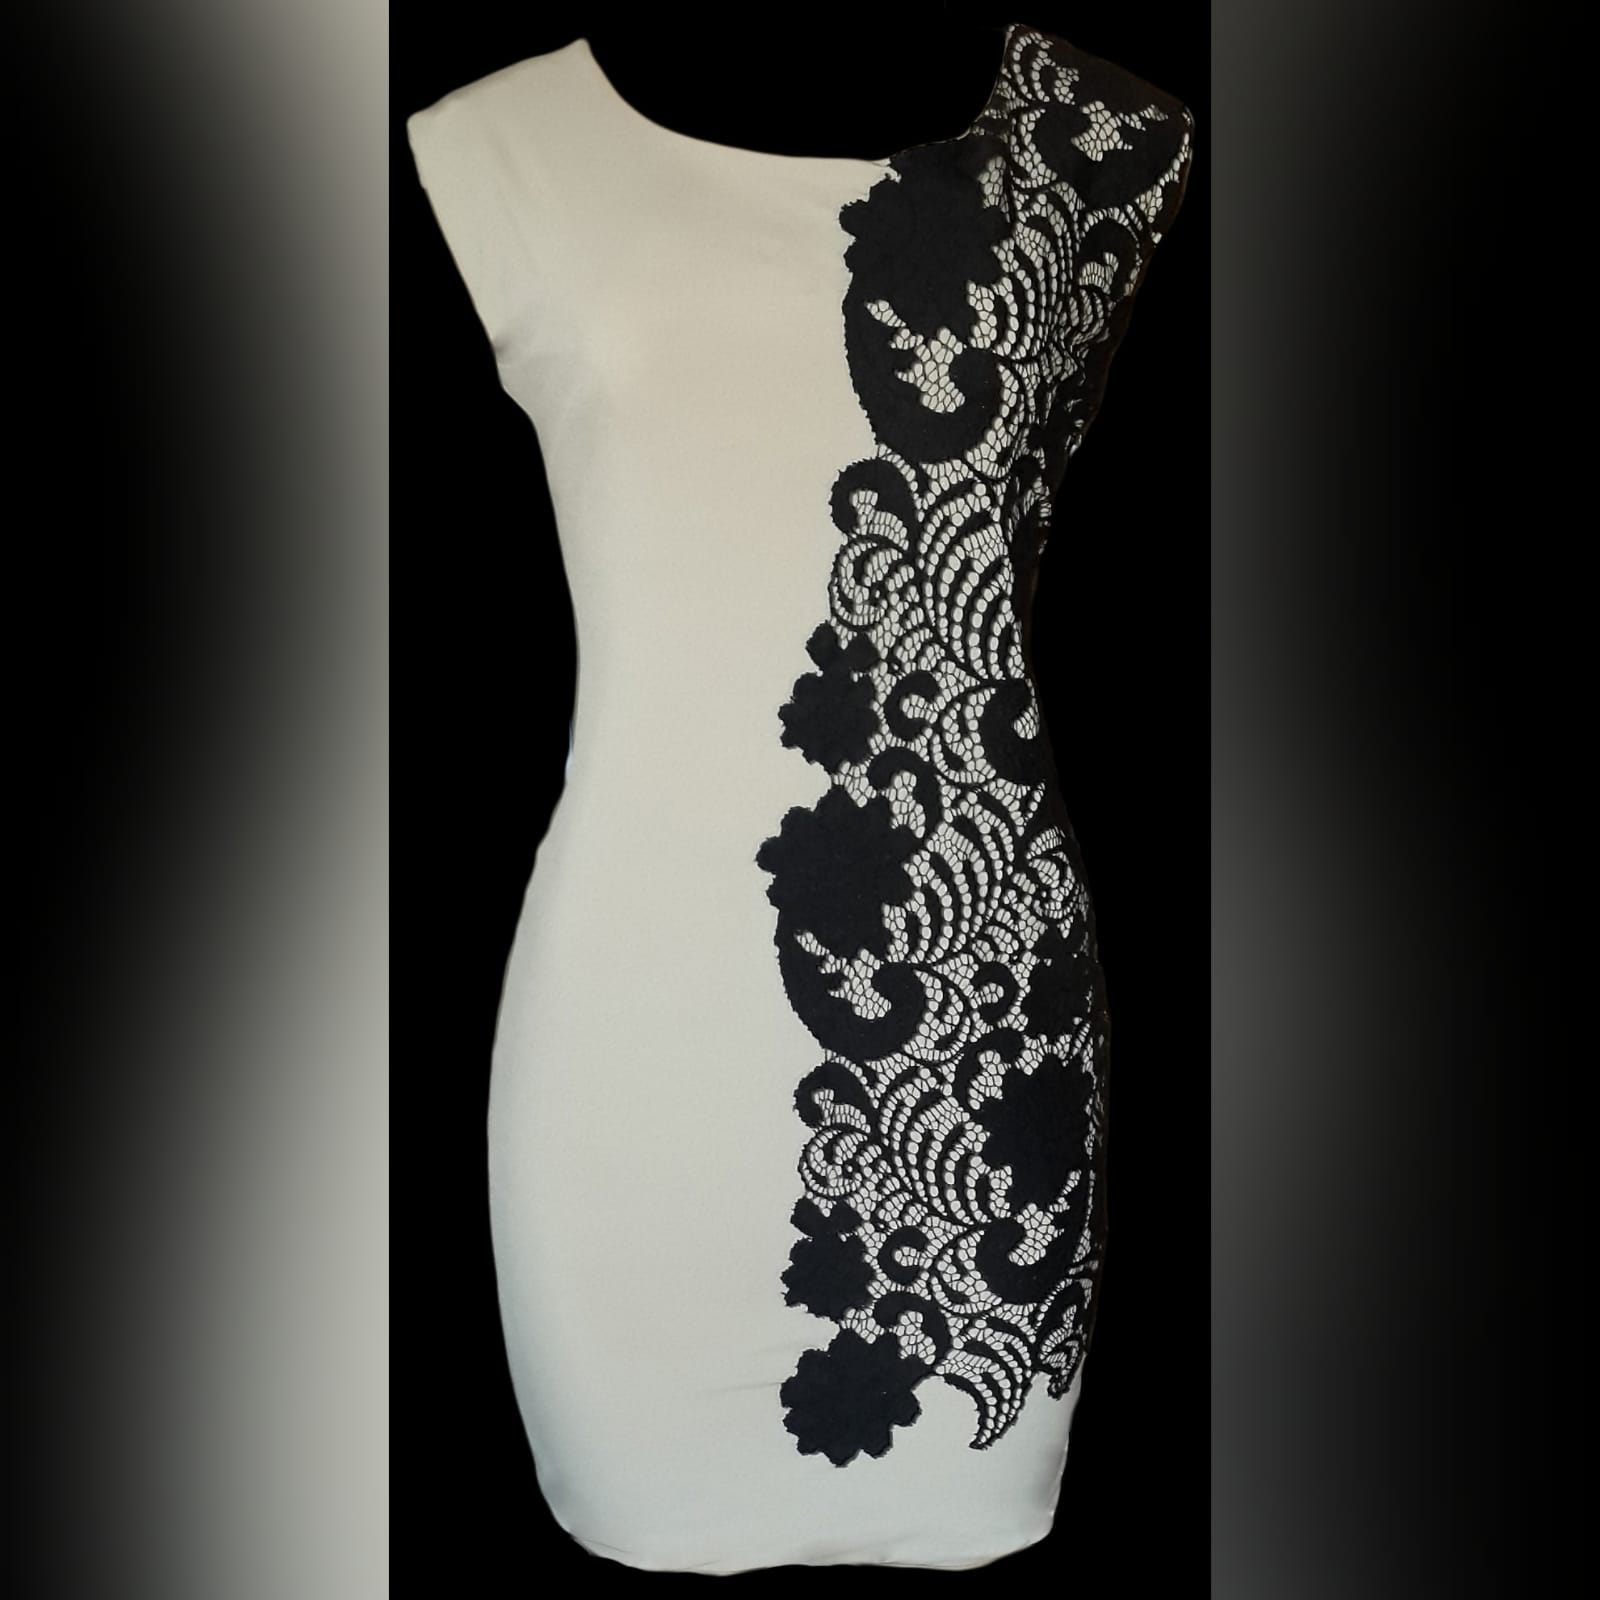 Nude and black mini fitted party dress 3 nude and black mini fitted party dress, one side is nude and one detailed in black lace